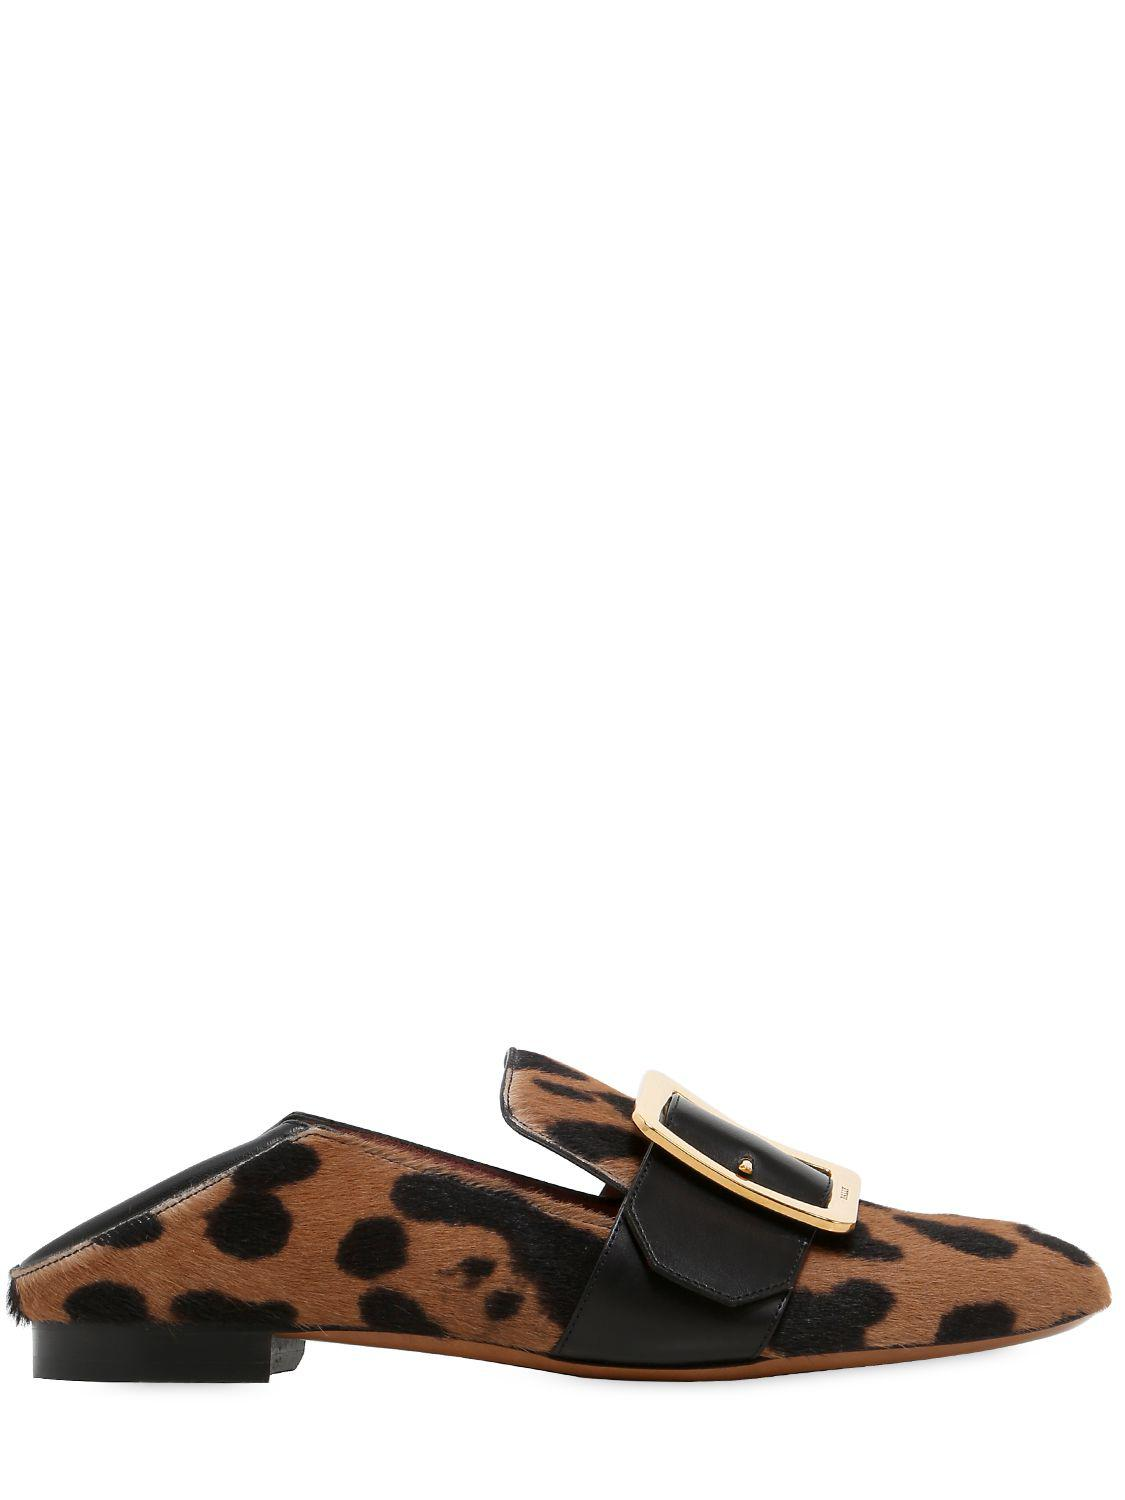 Bally. Women's 10mm Belle Du Jour Janelle Loafers